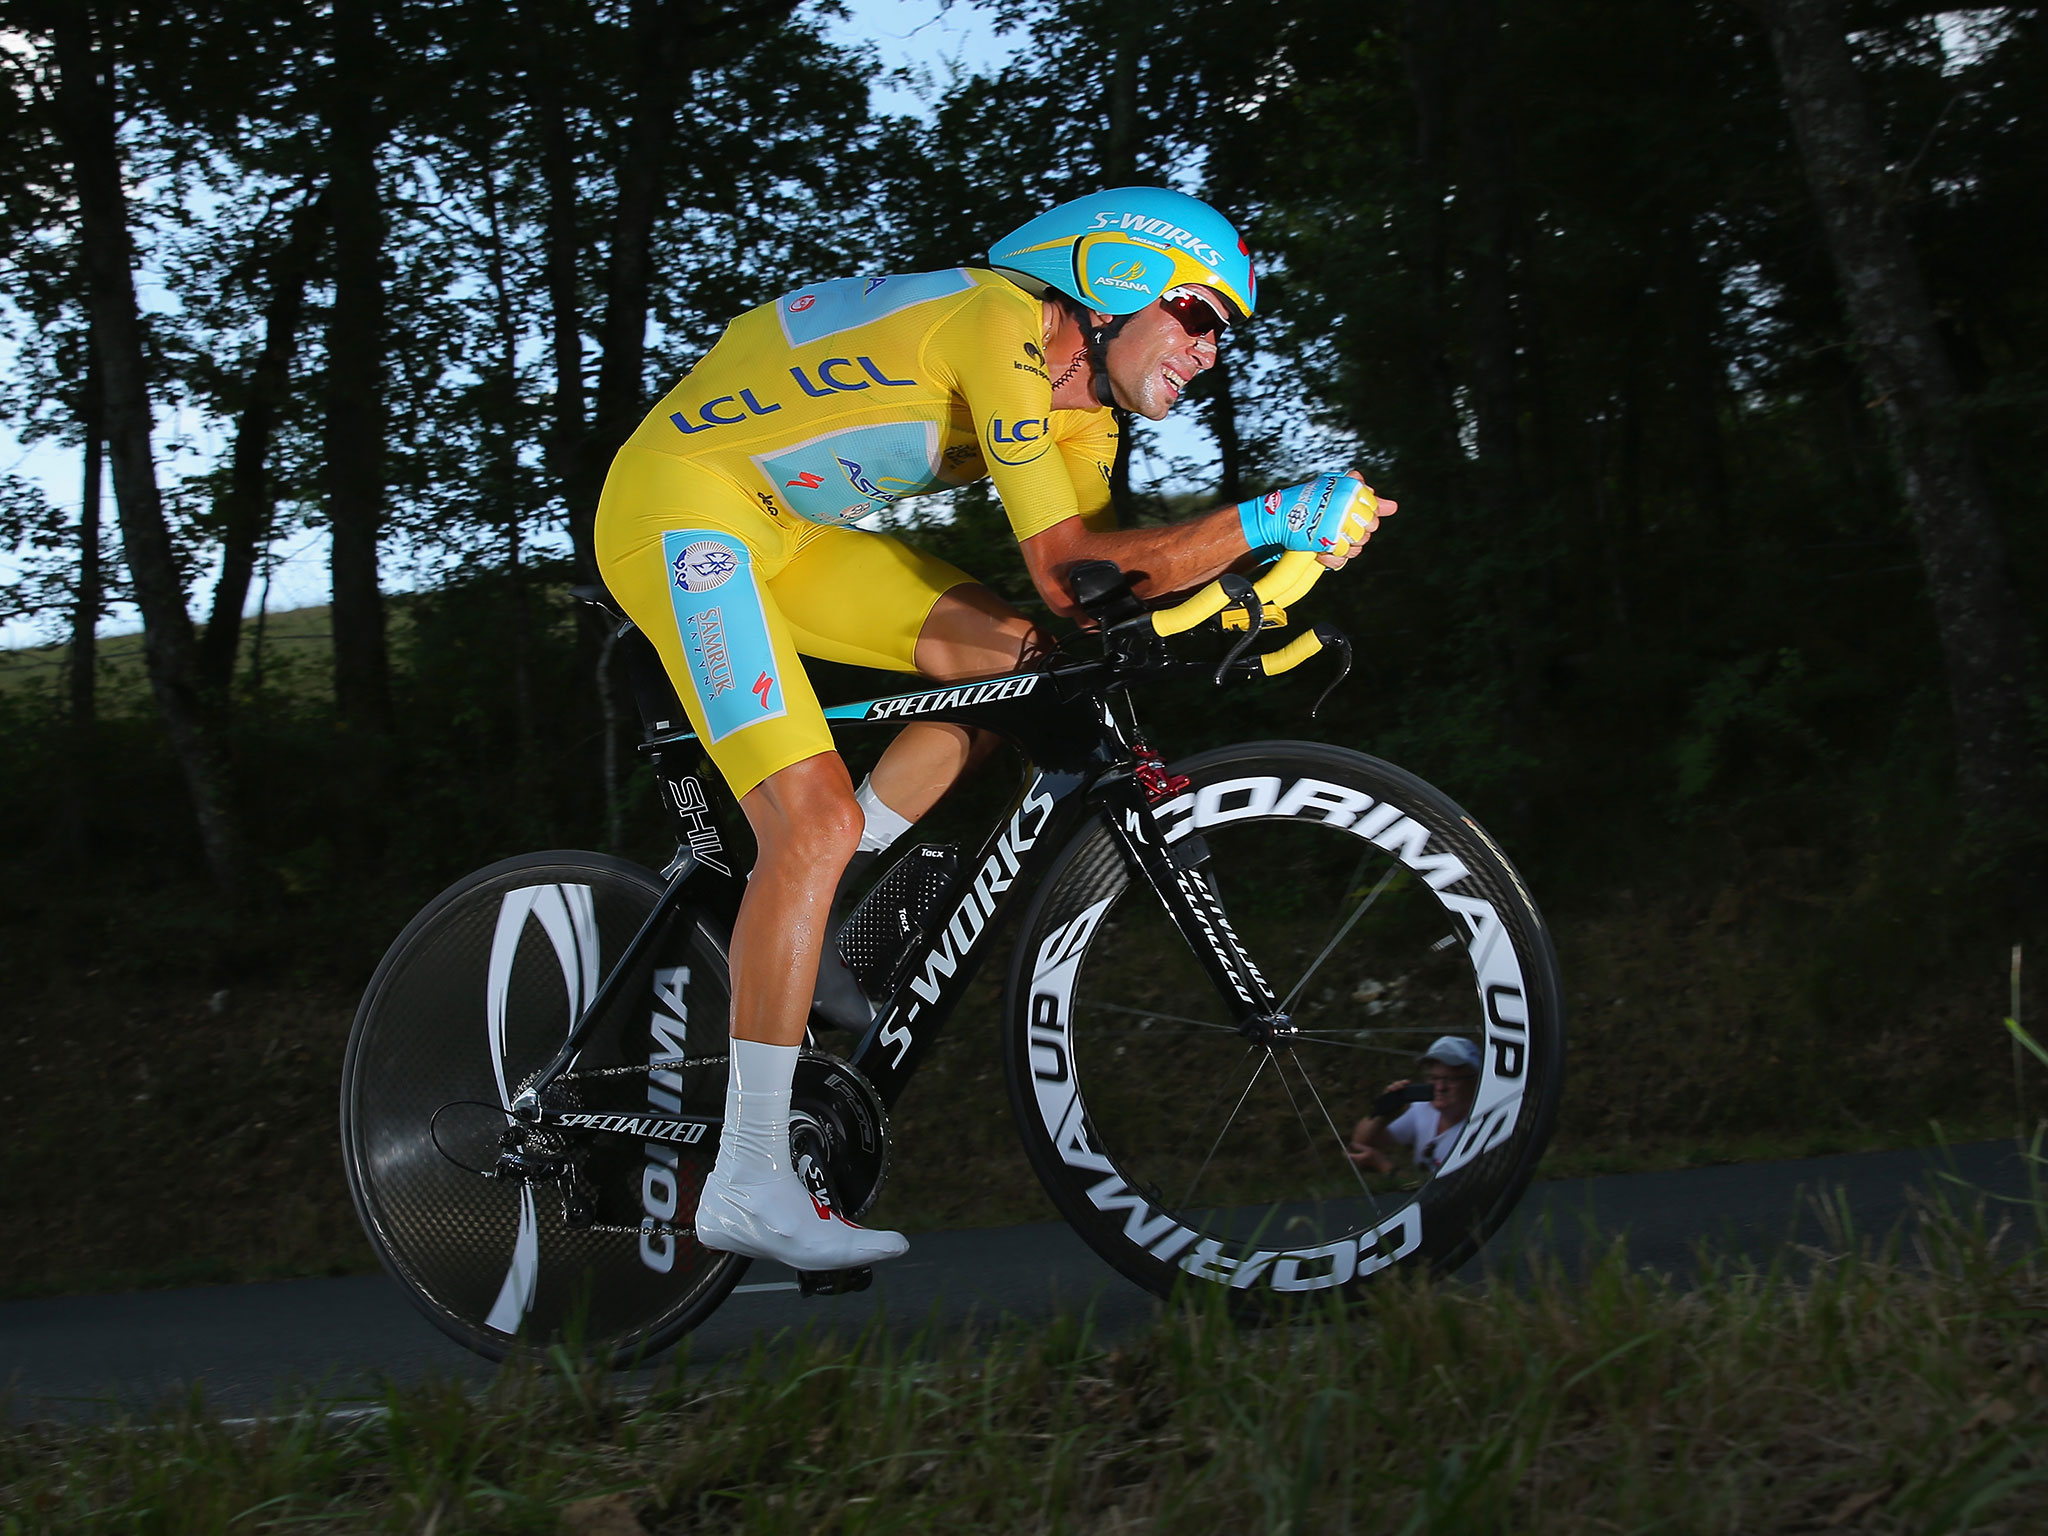 d177d147f5d ... Vincenzo Nibali on his Specialized Shiv TT bike during the time trial of  the 20th stage